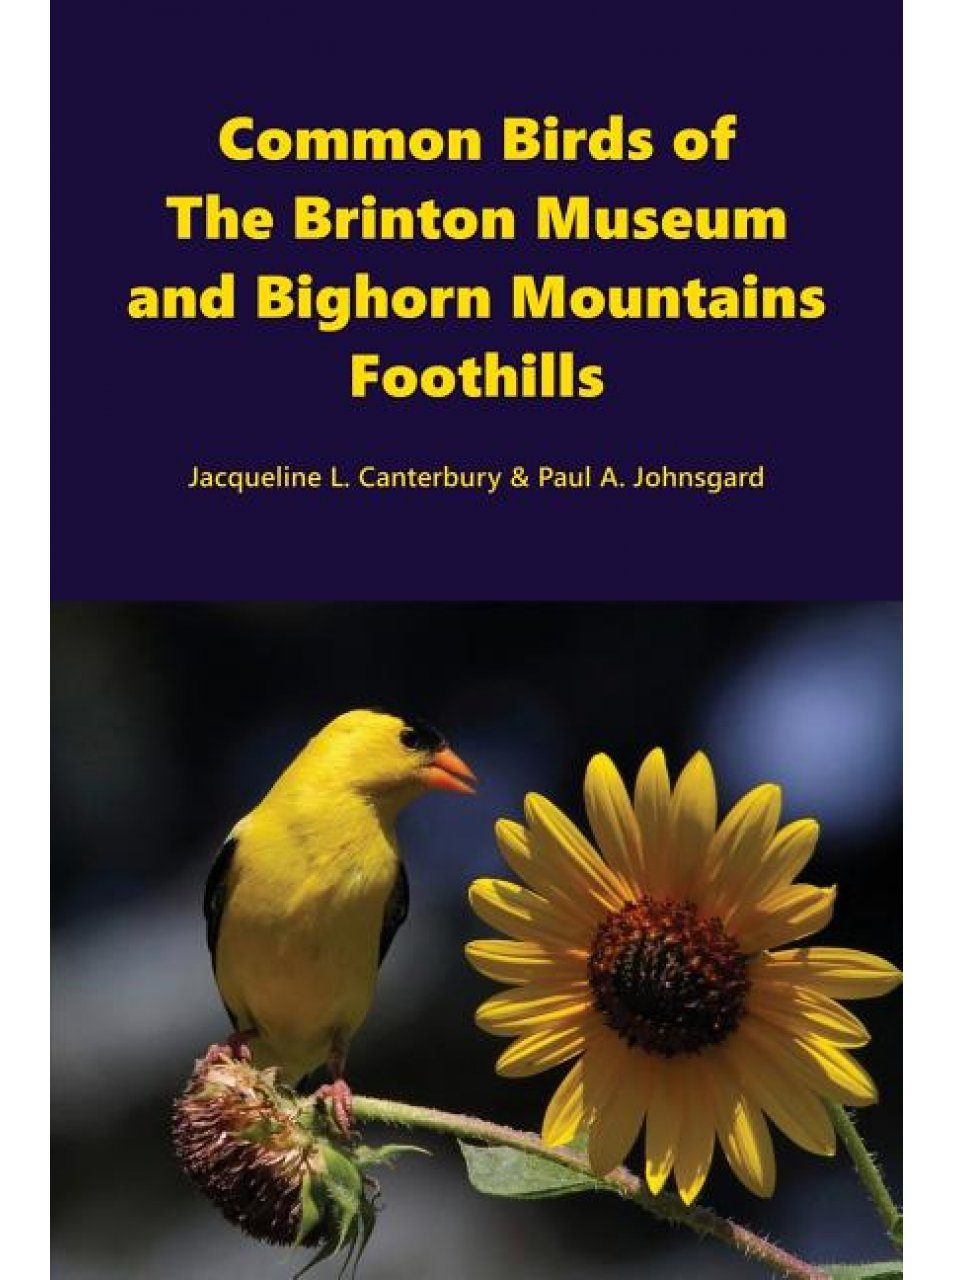 Common Birds of the Brinton Museum and Bighorn Mountains Foothills